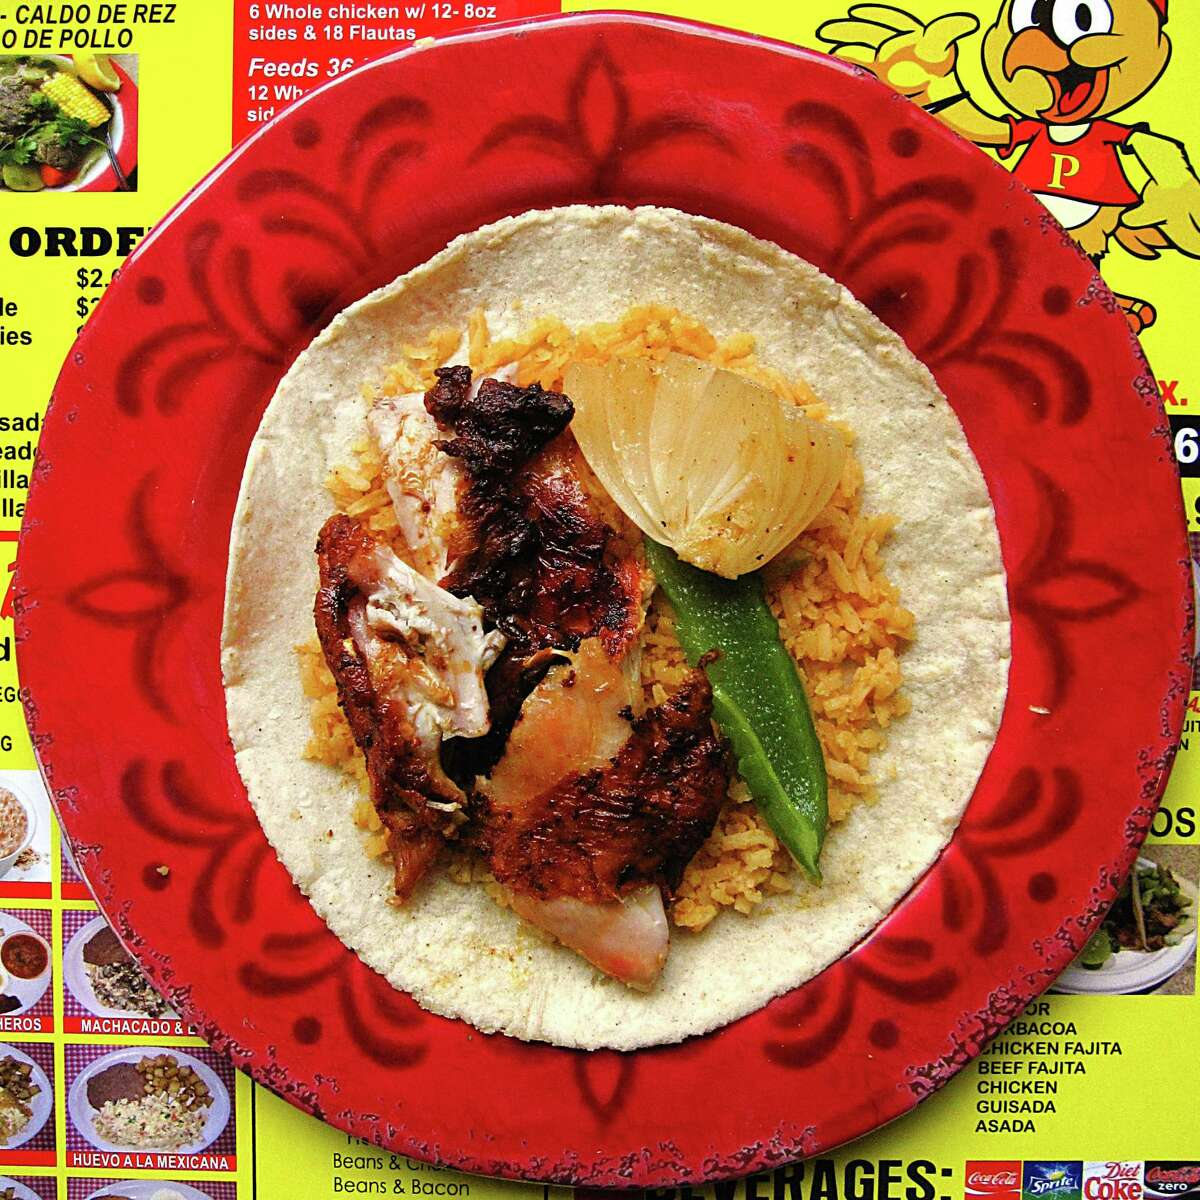 Do-it-yourself pollos asados taco bult with chicken, rice, grilled onion and grilled pepper on a handmade corn tortilla from Super Pollos Asados Los Primos on Culebra Road.